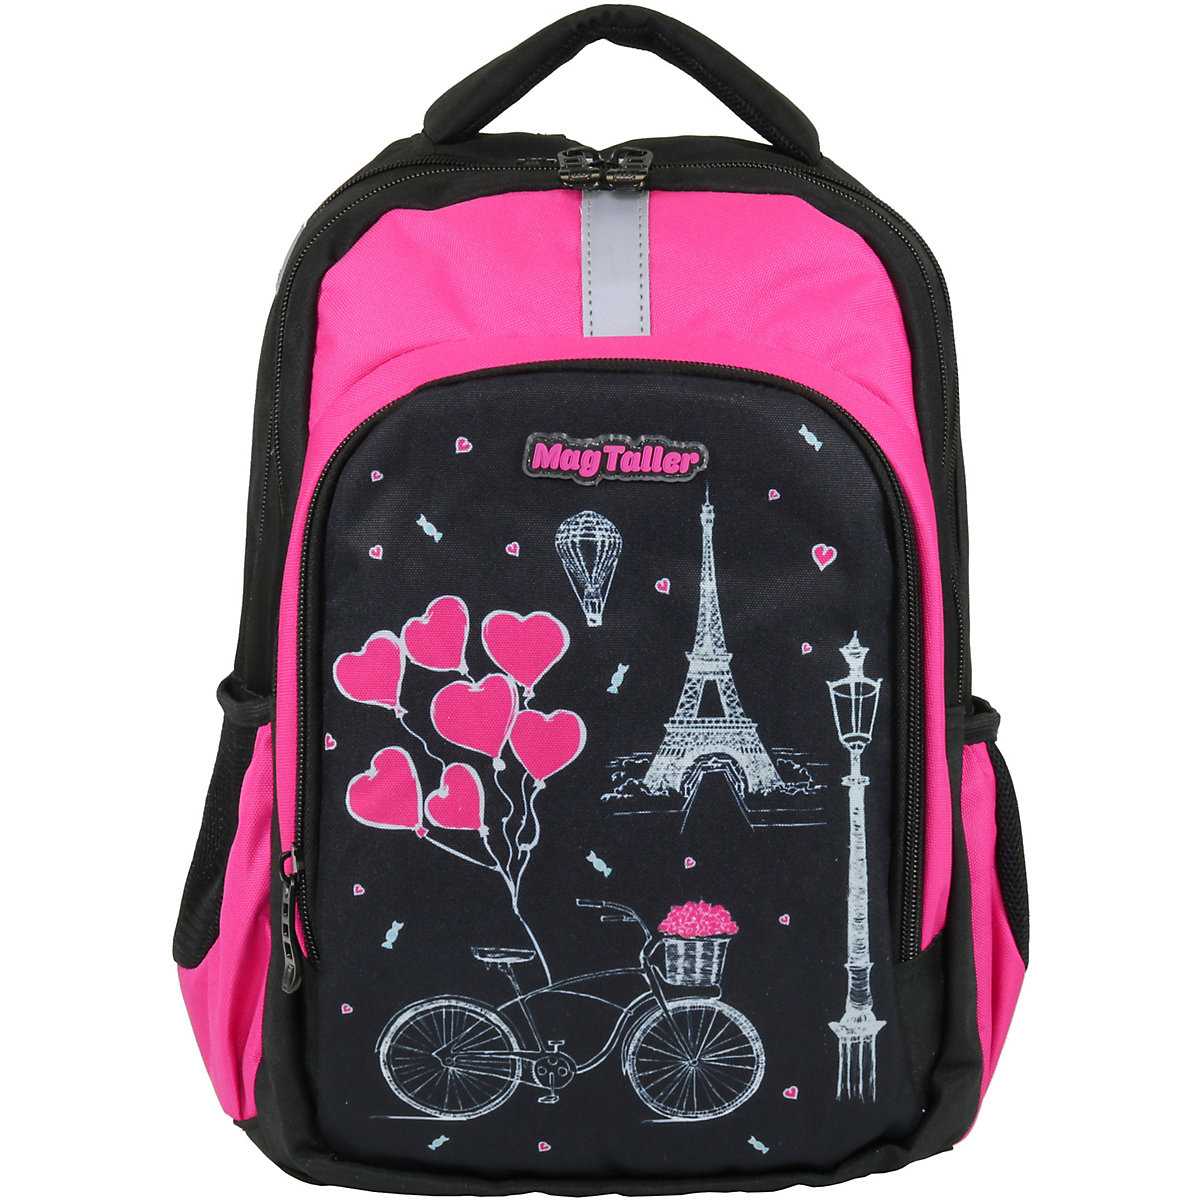 Фото - School Bags MAGTALLER 11154884 schoolbag backpack knapsacks orthopedic bag for boy and girl animals flower sprints women handbags 2018 new fashion summer chain ladies hand bags cartoon girl printed female crossbody pink casual tote k059